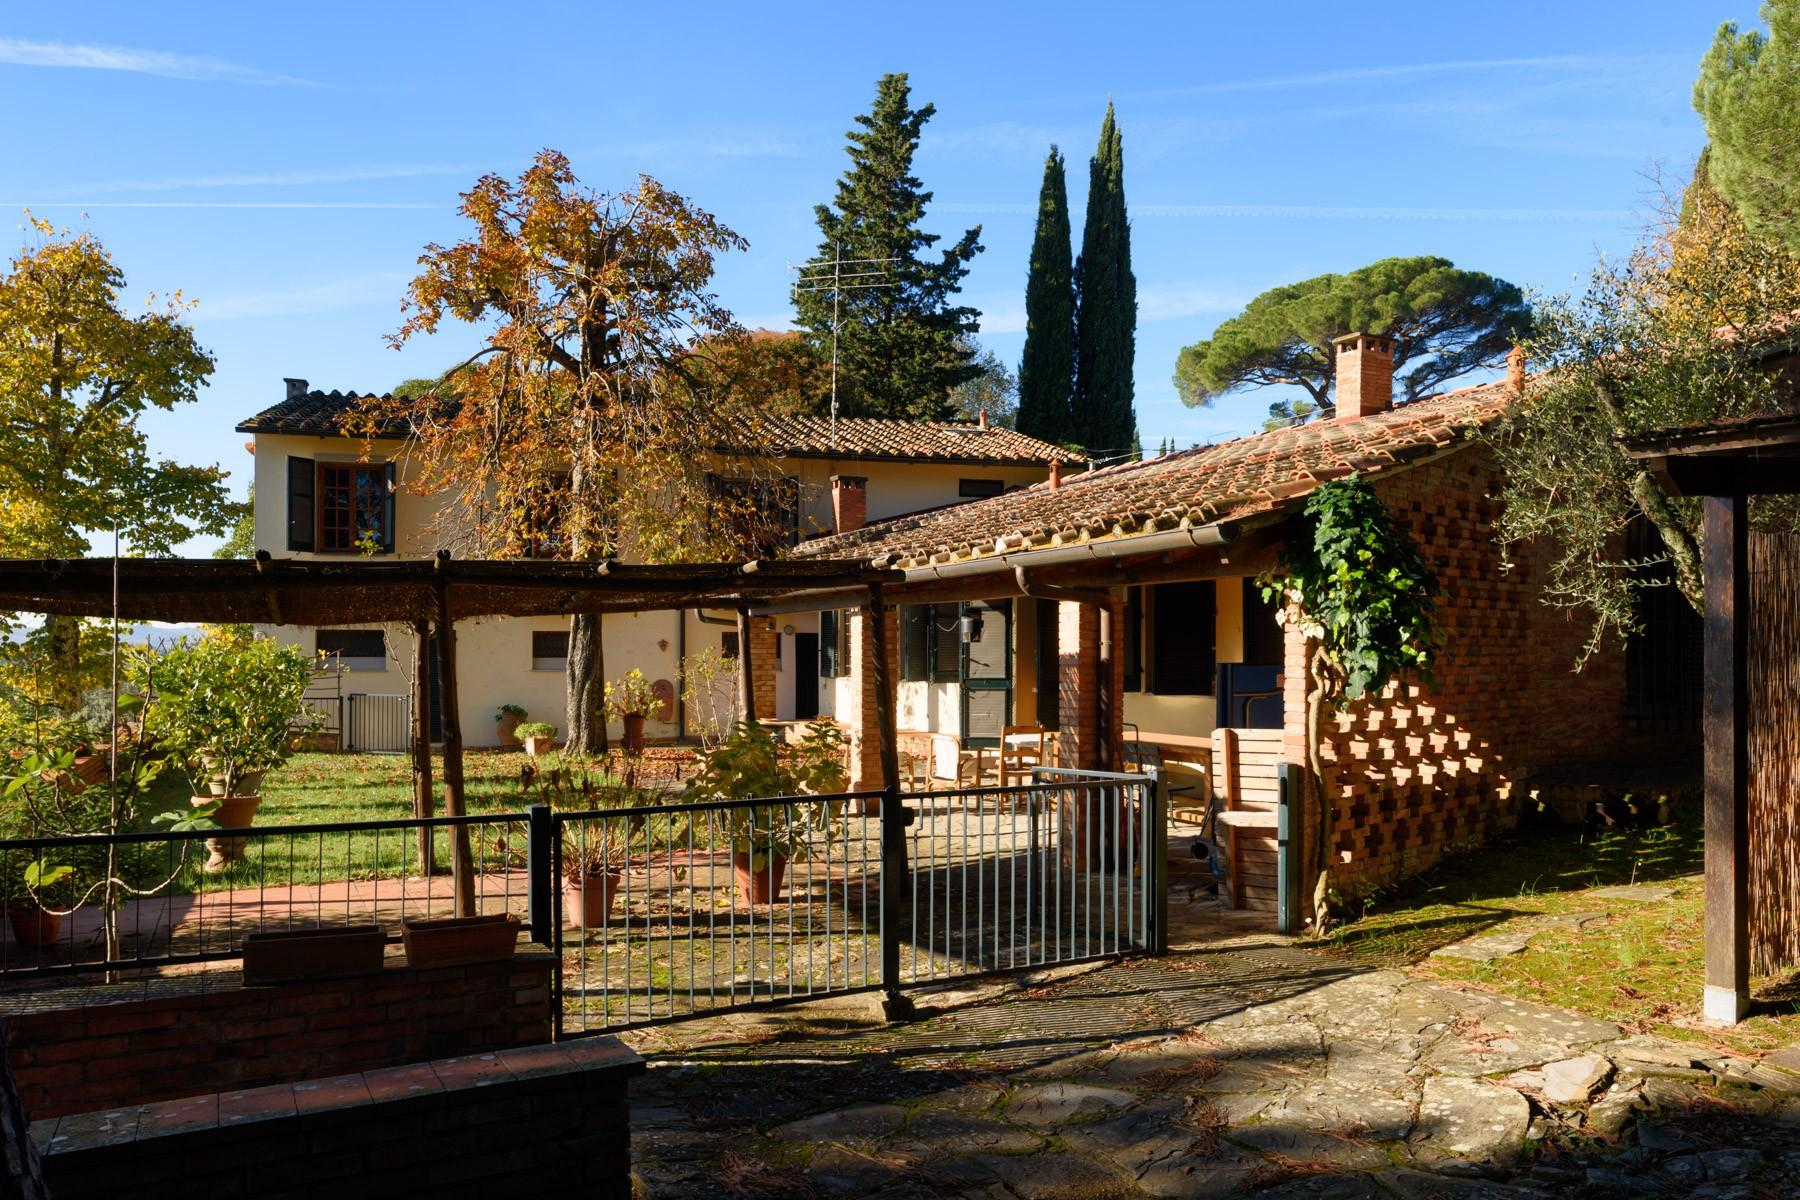 Marvelous villa in the chianti countryside - 4